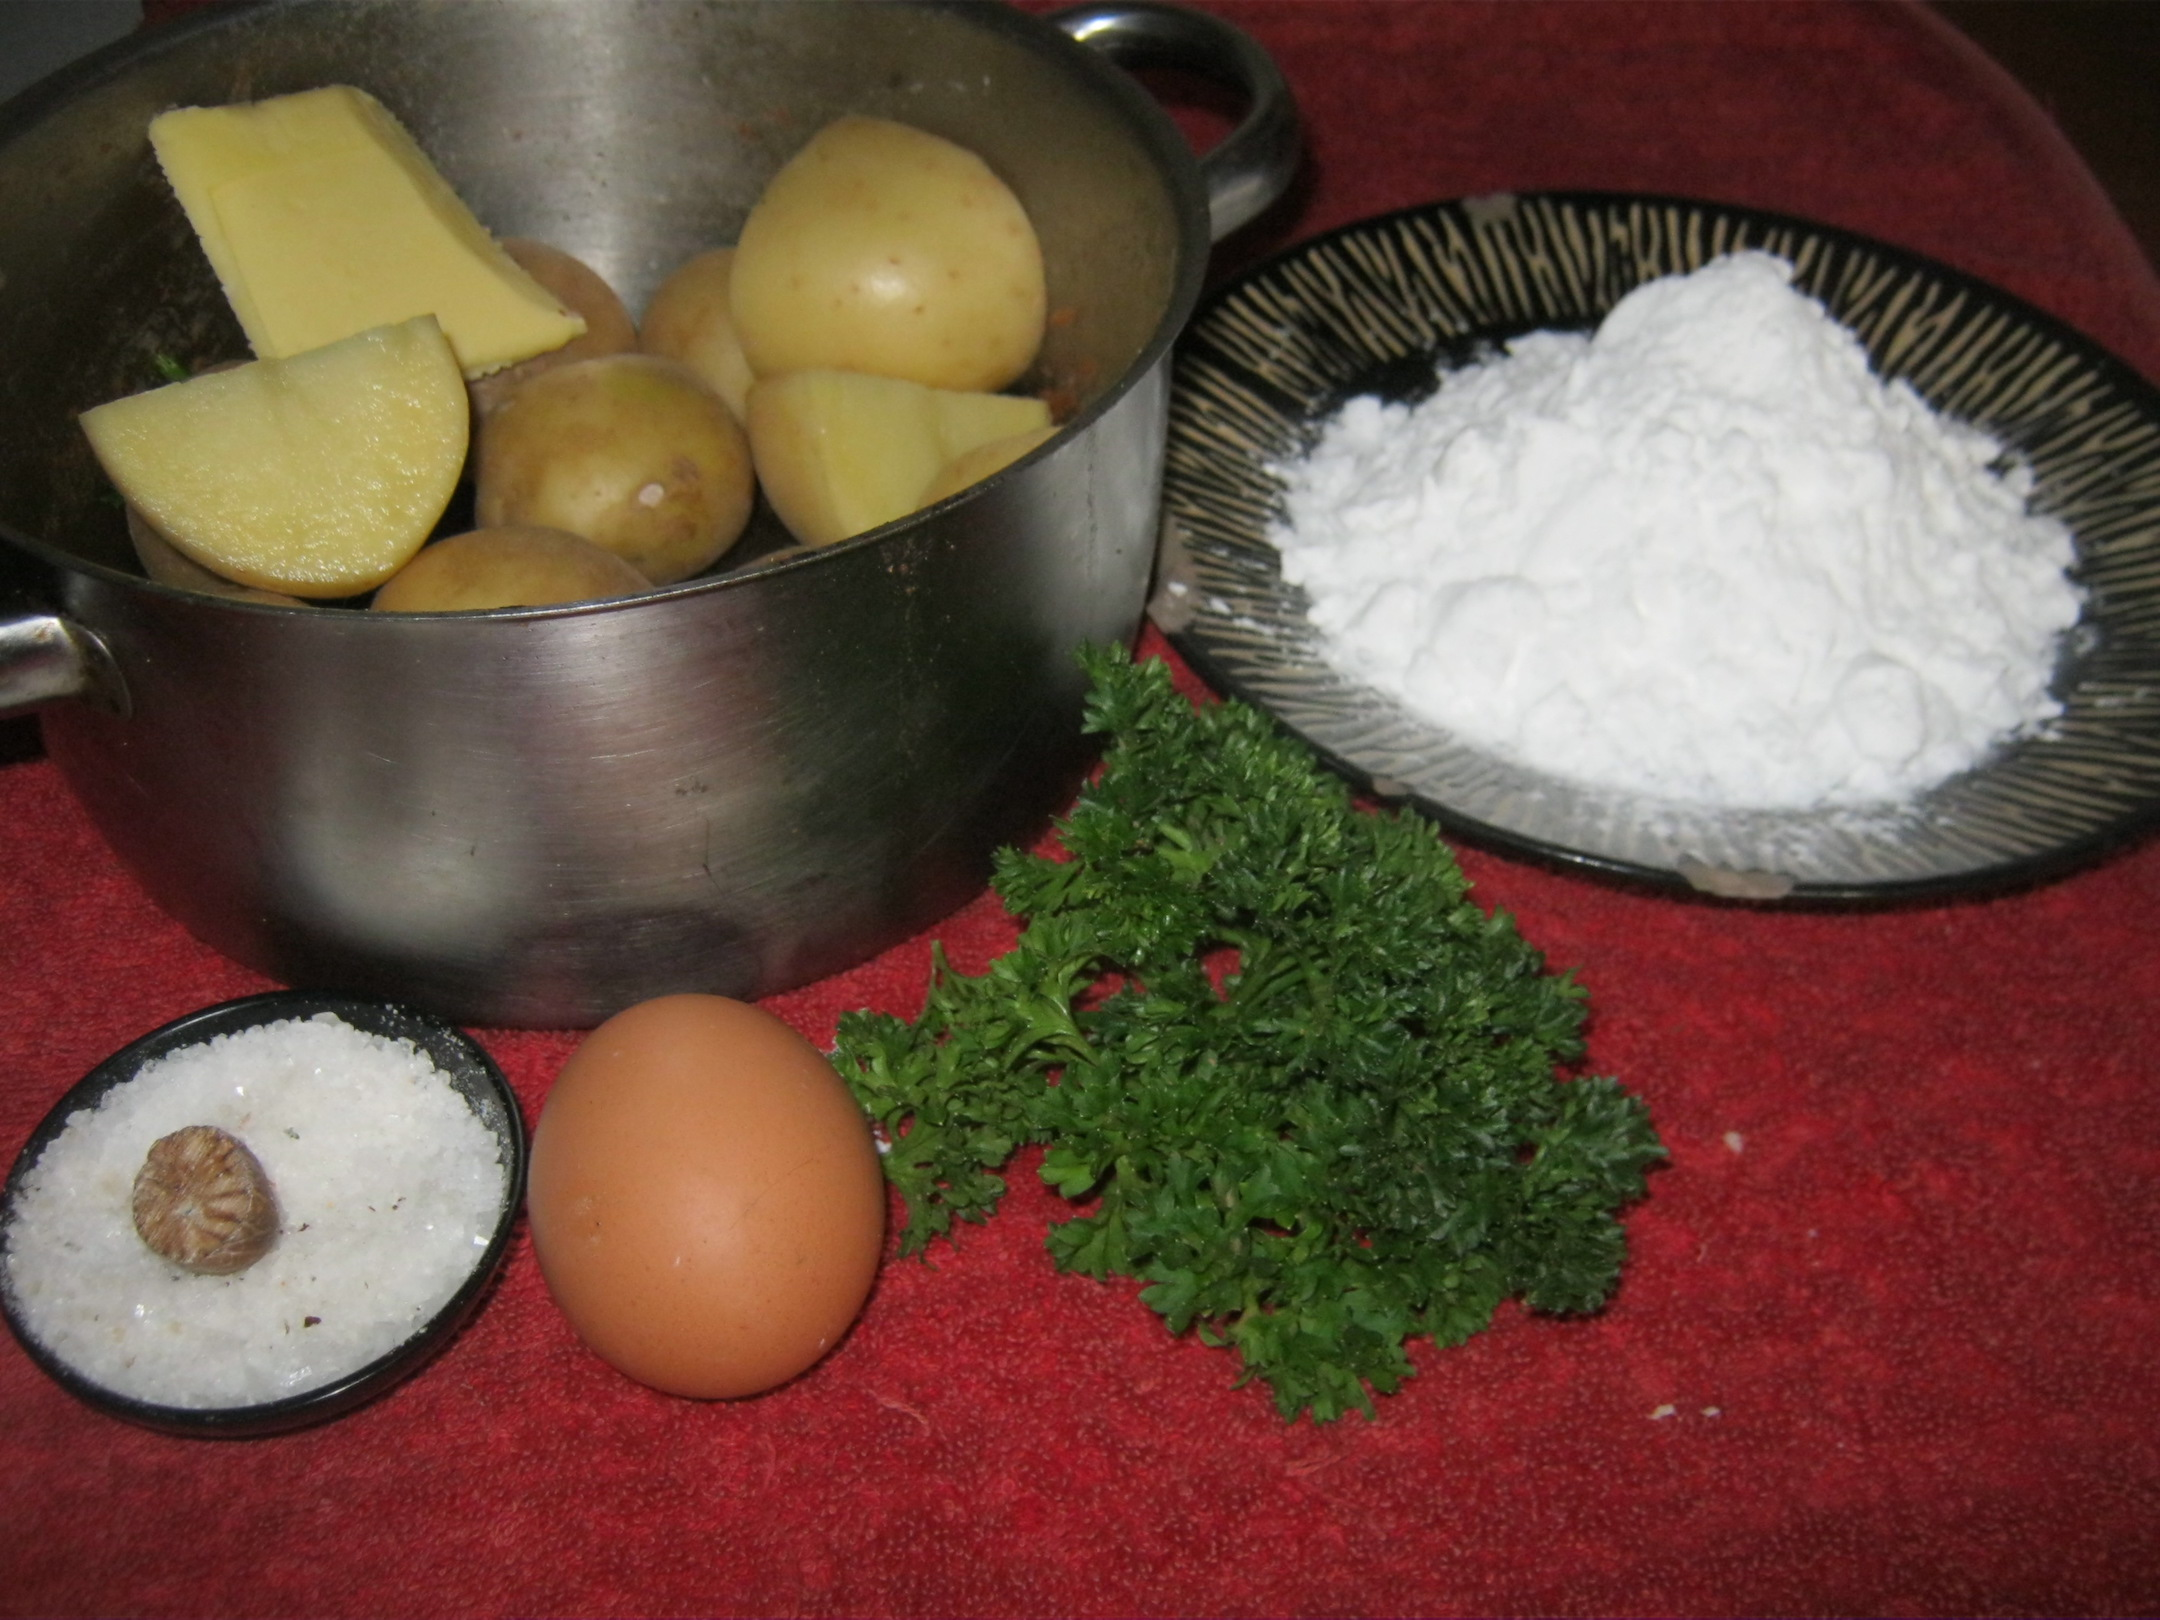 Ingredients for Potato Dumplings